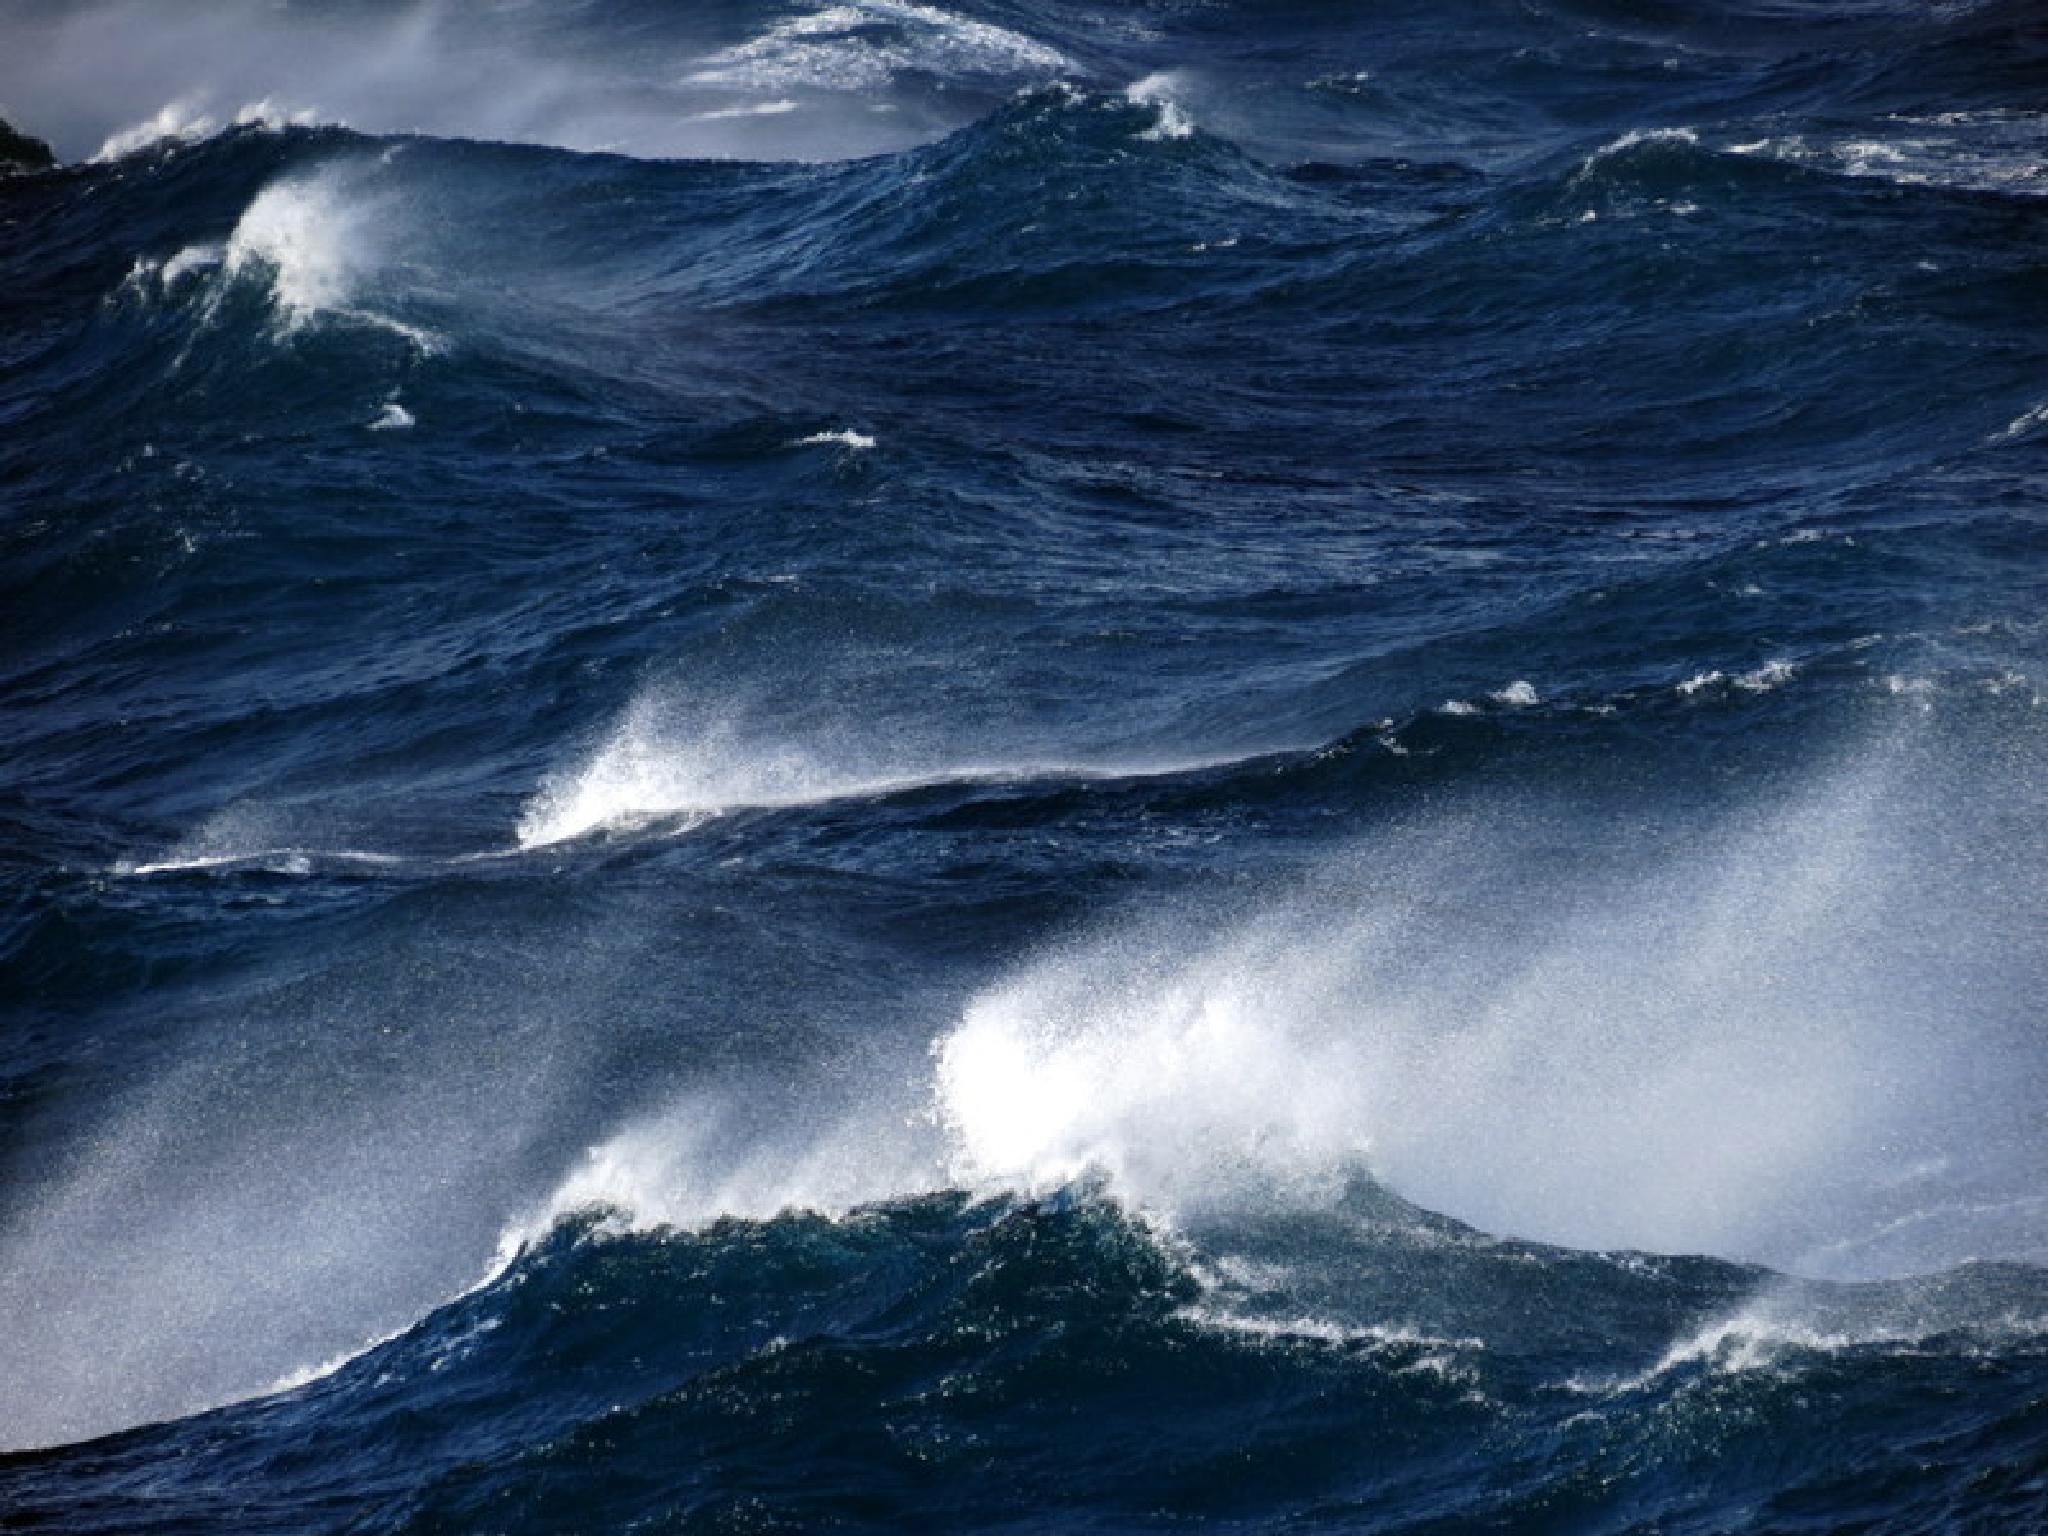 Stormy North Sea off Shetland Isles by newscatnesscarvings